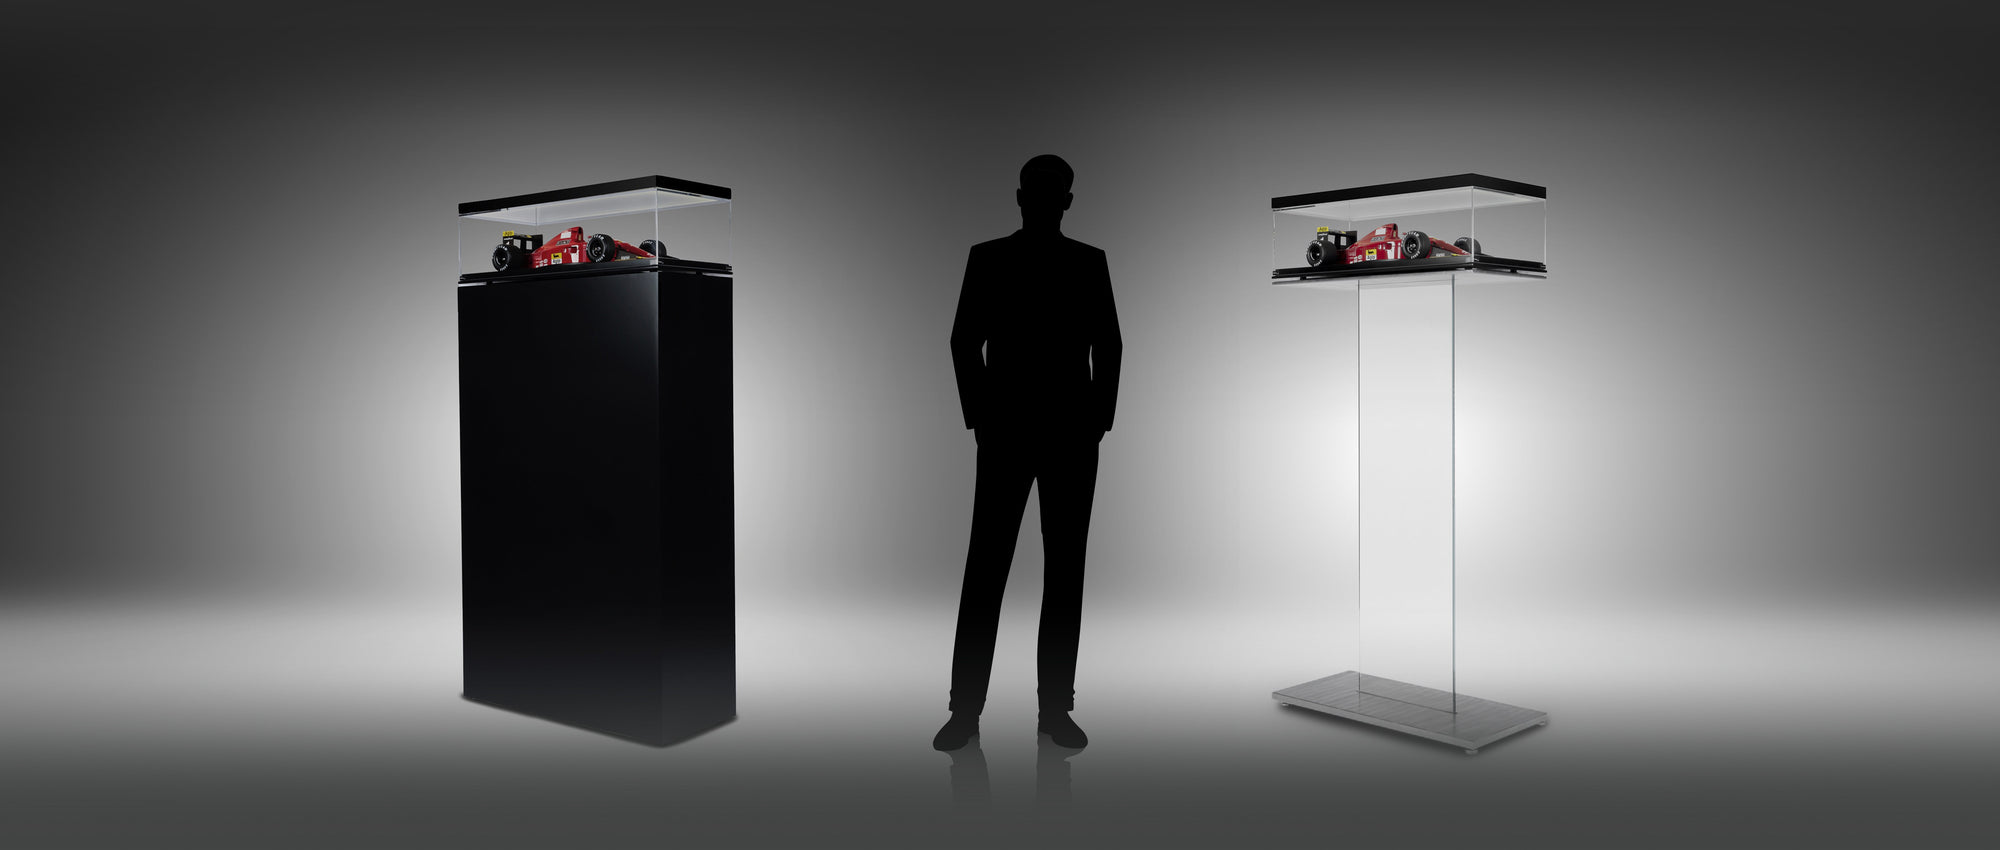 Display cabinets for 1:8 scale models